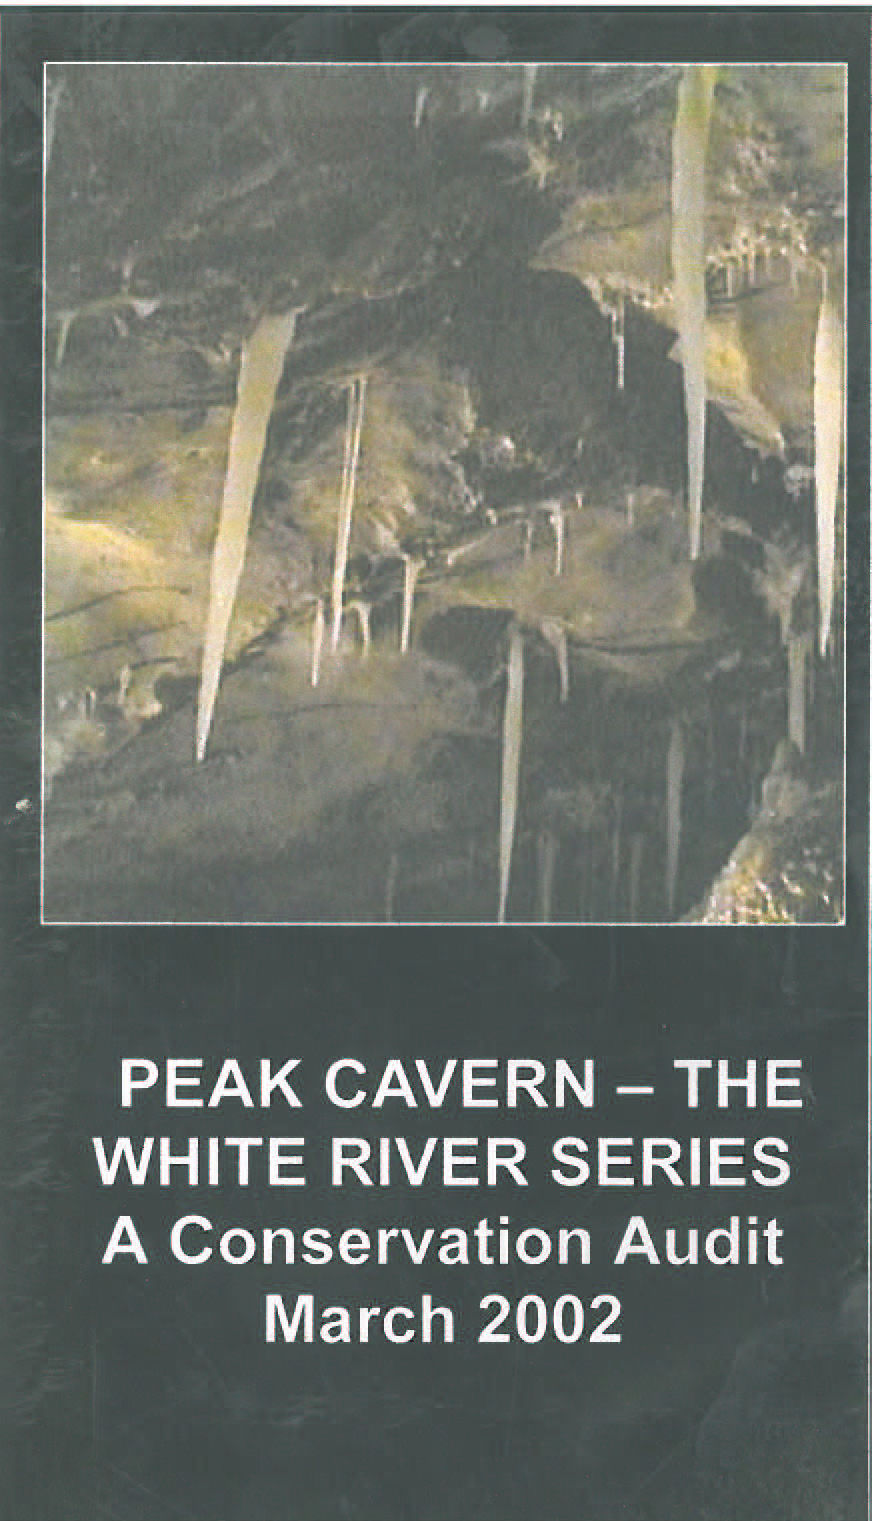 The White River Series